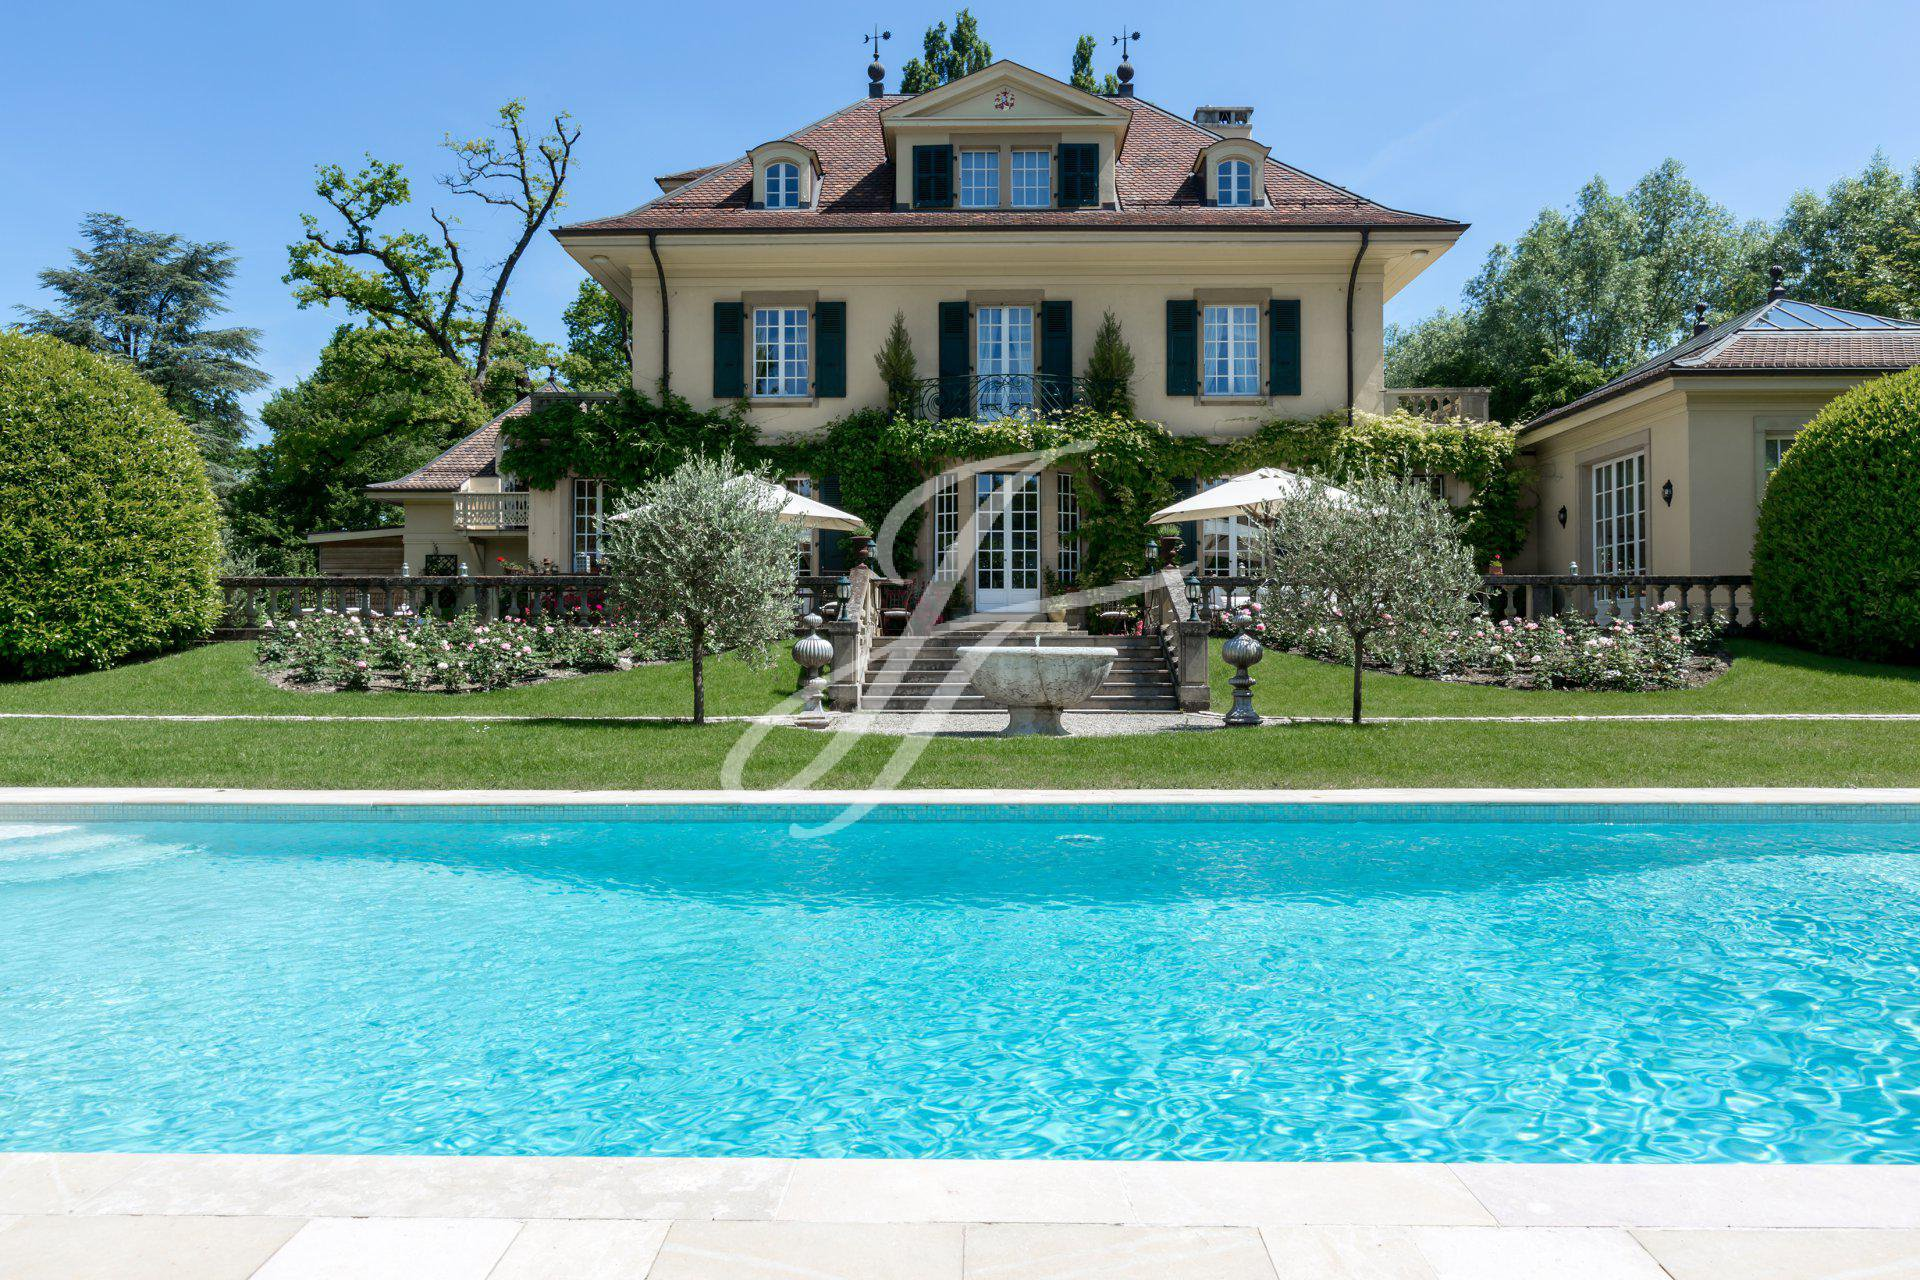 Luxury Home For Sale in Geneva, Switzerland for sale | John Taylor Switzerland | FINEST RESIDENCES